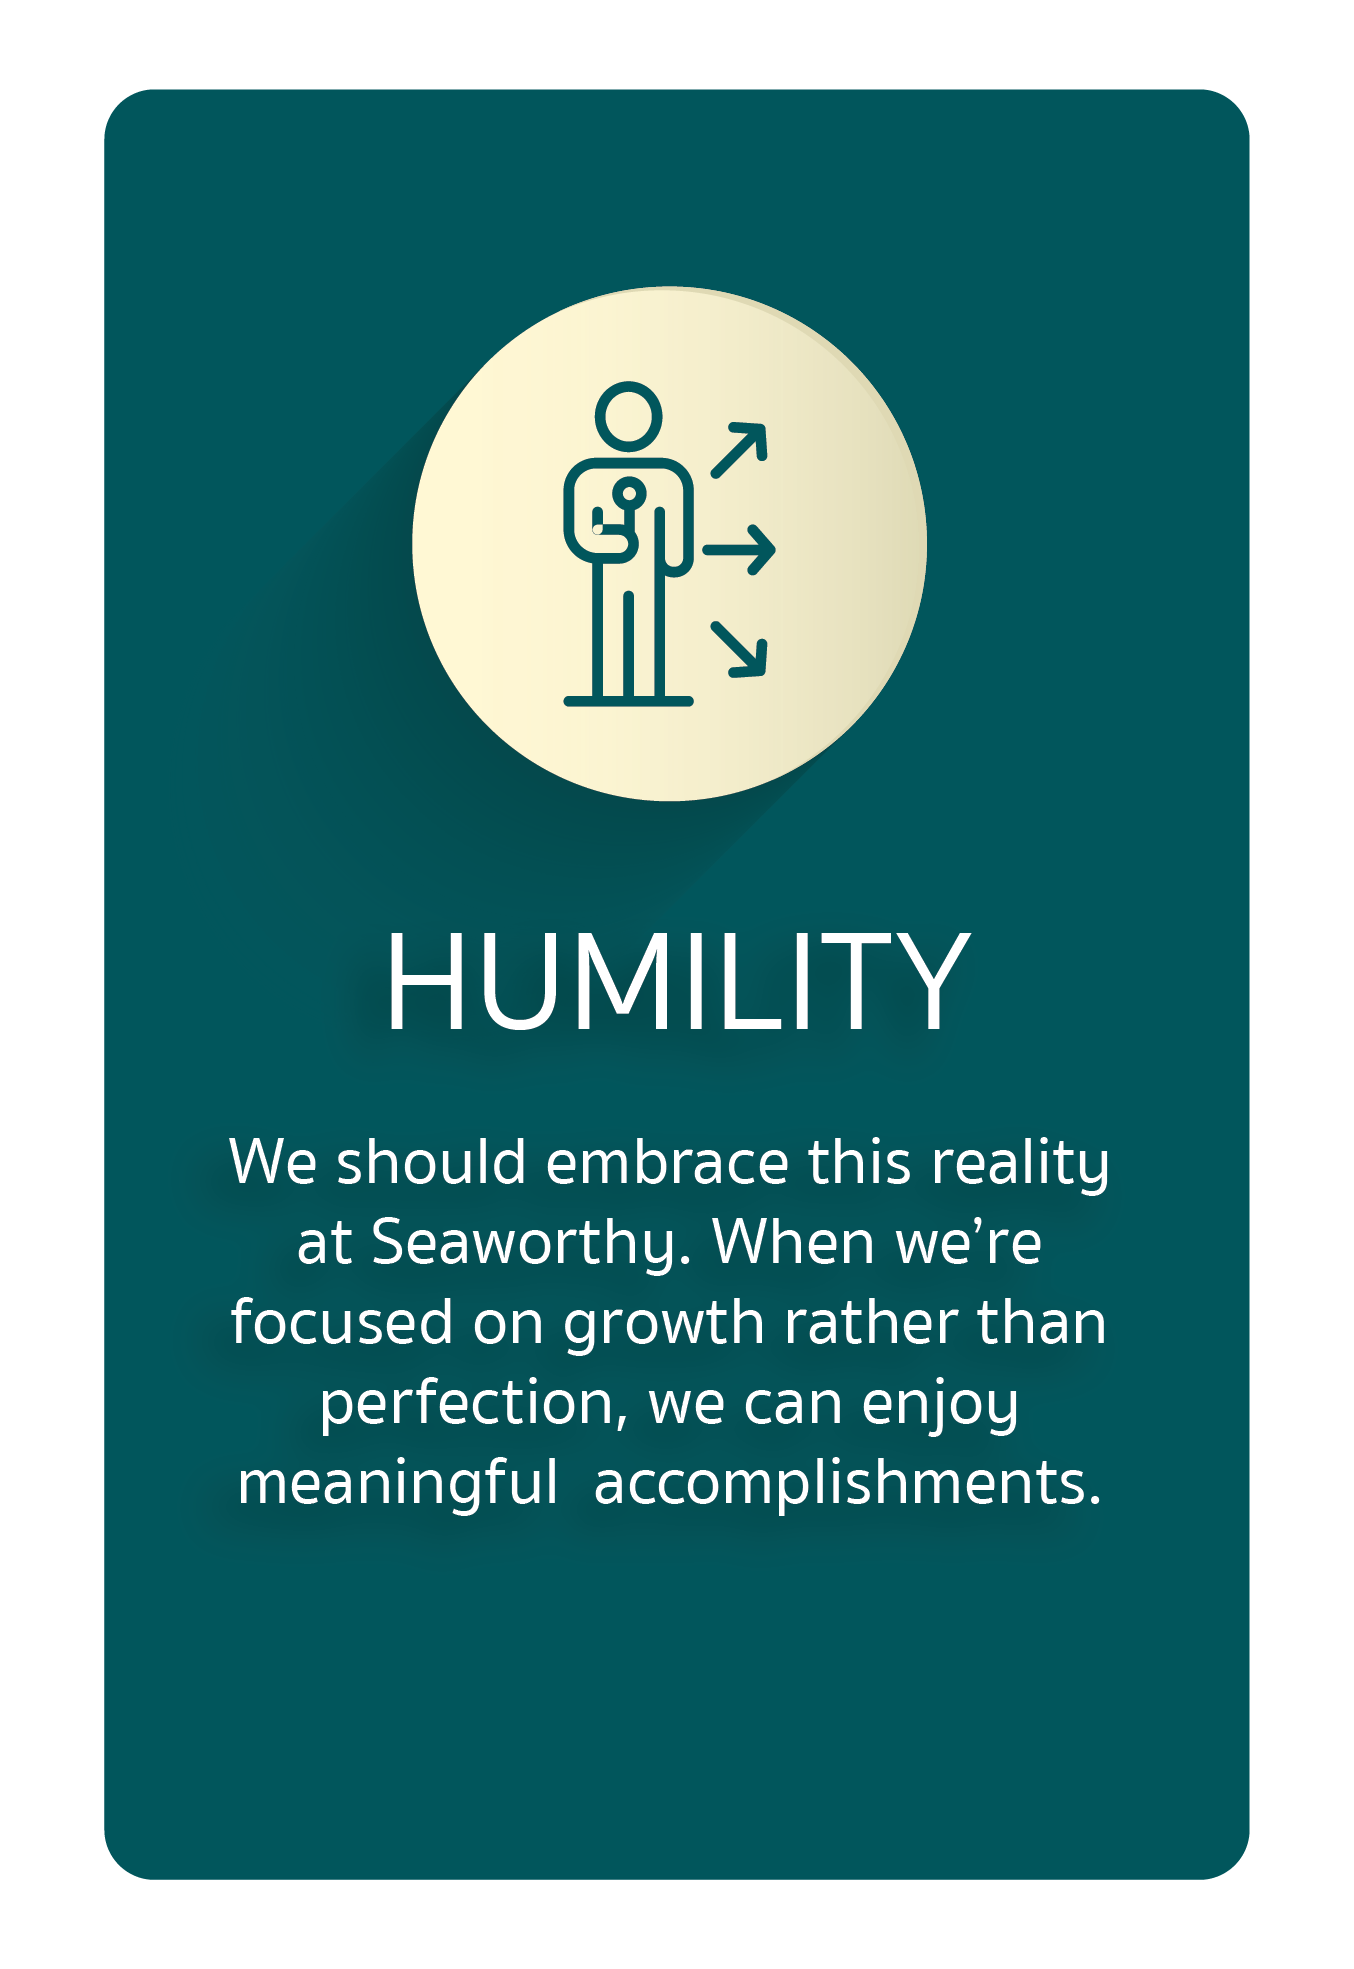 Core Value Humility